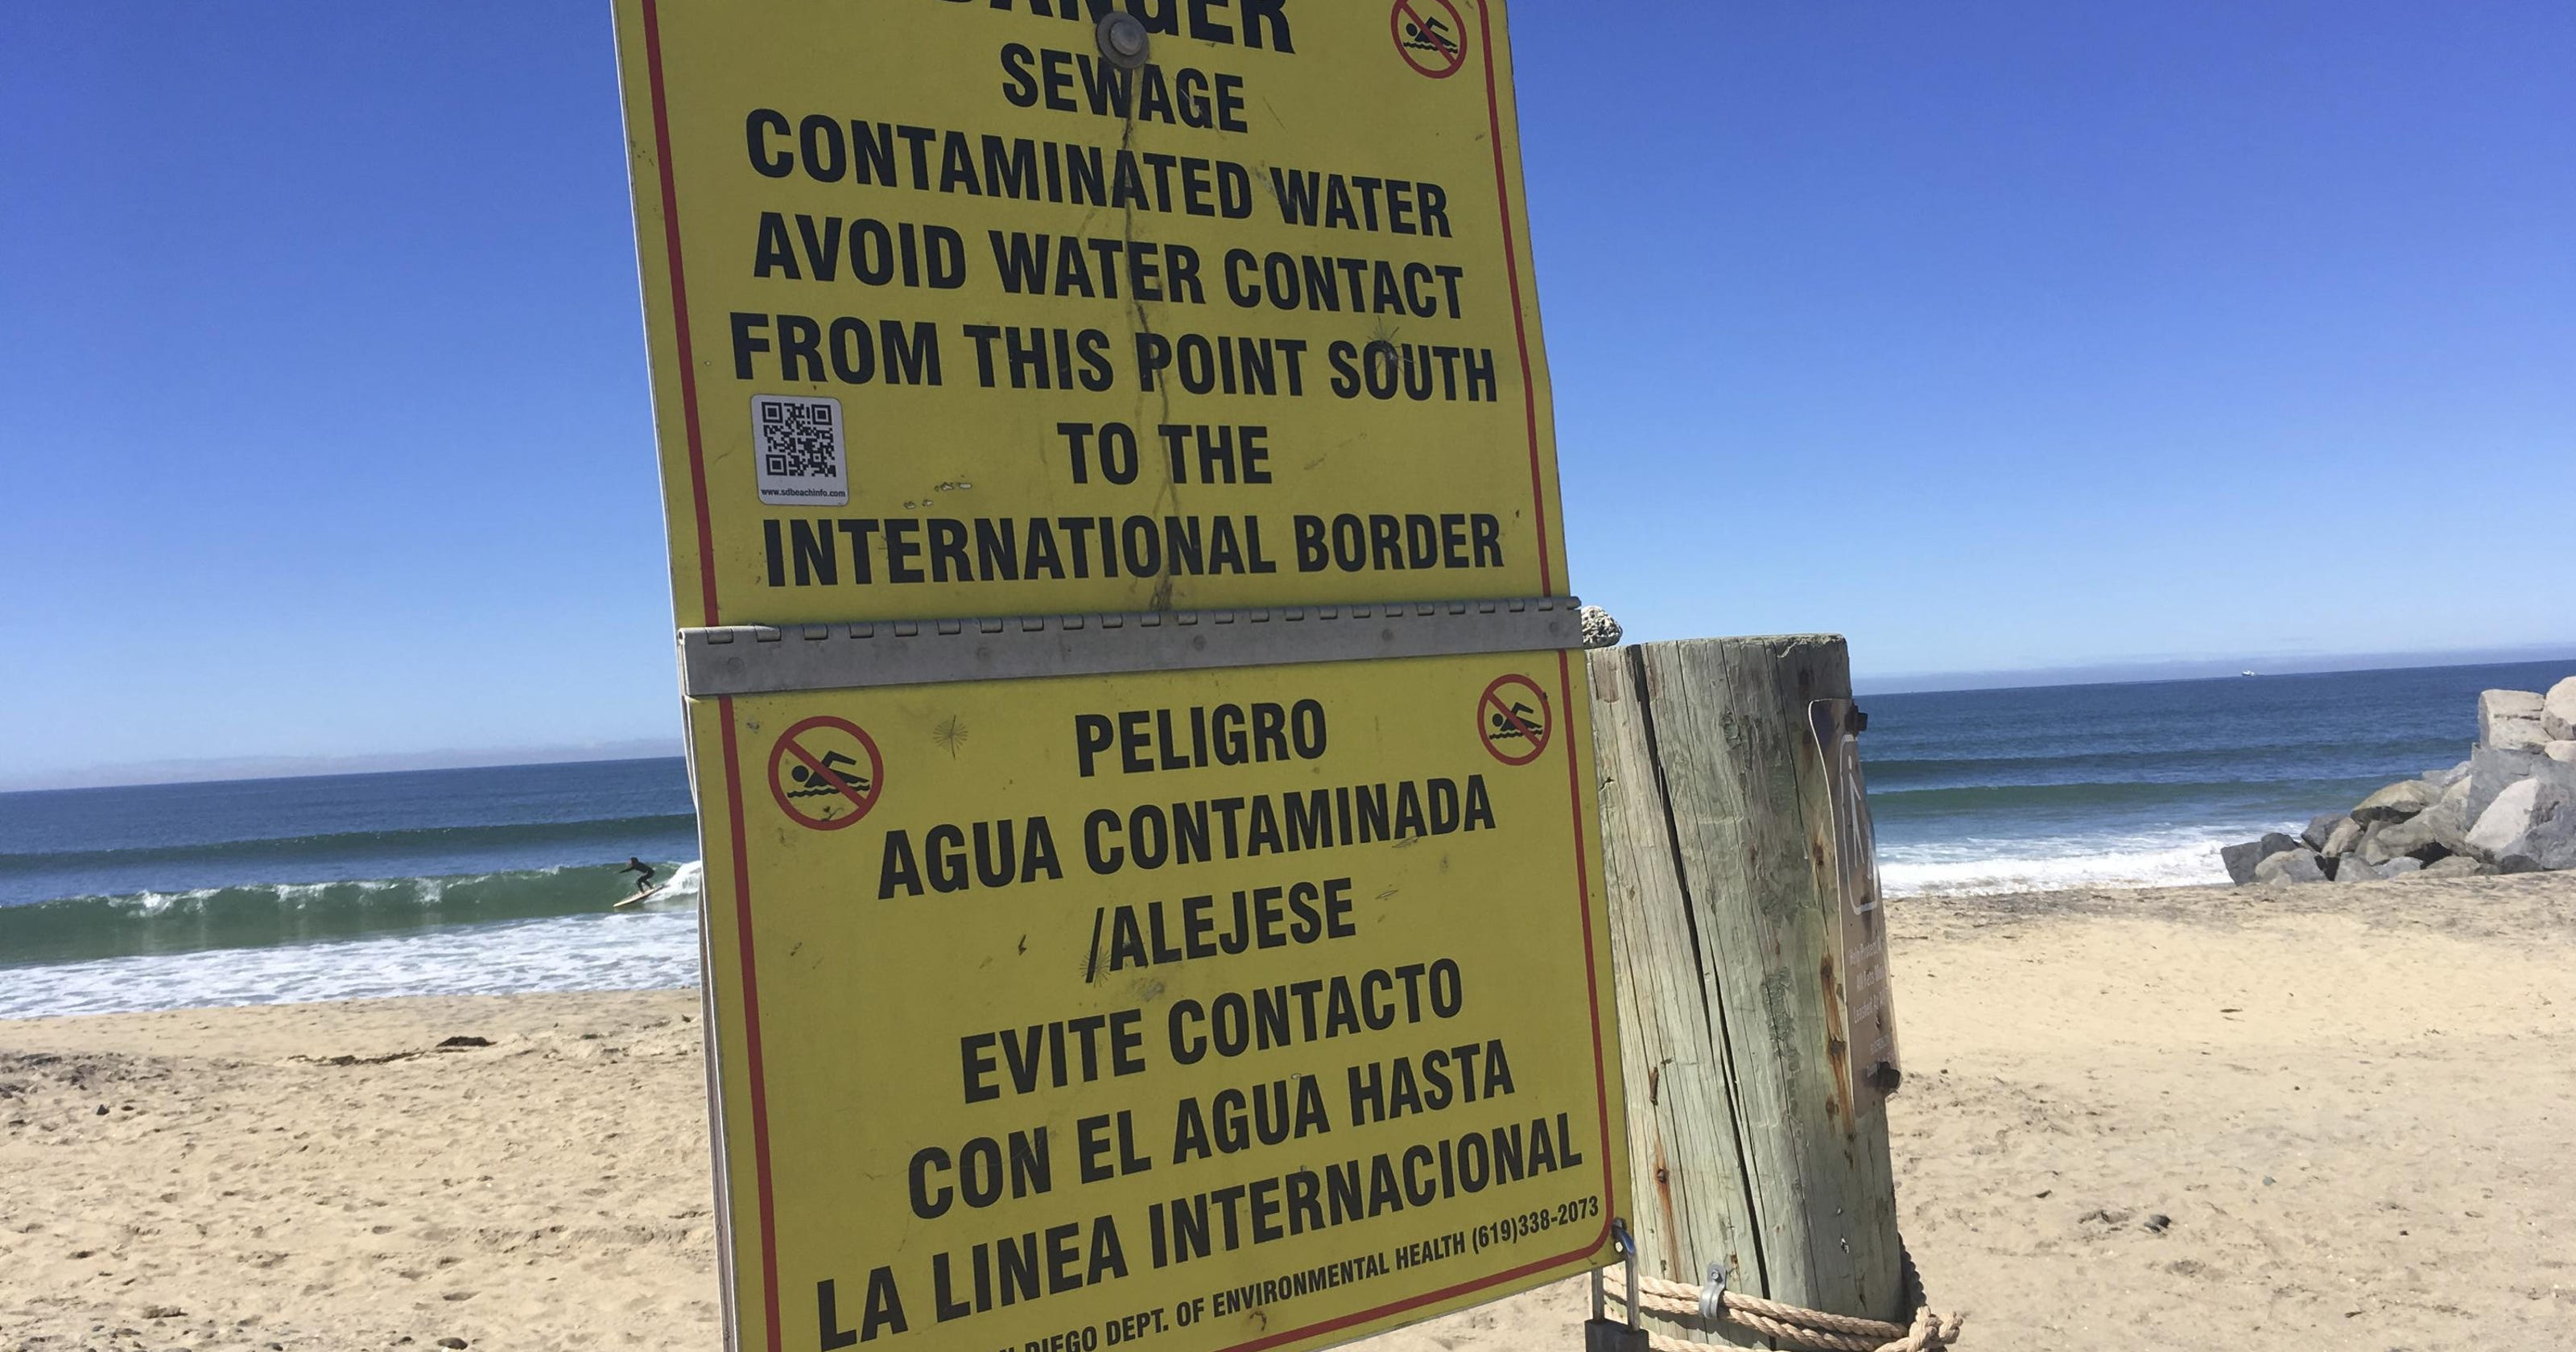 San Diego-areas sue to stop Mexican sewage flow